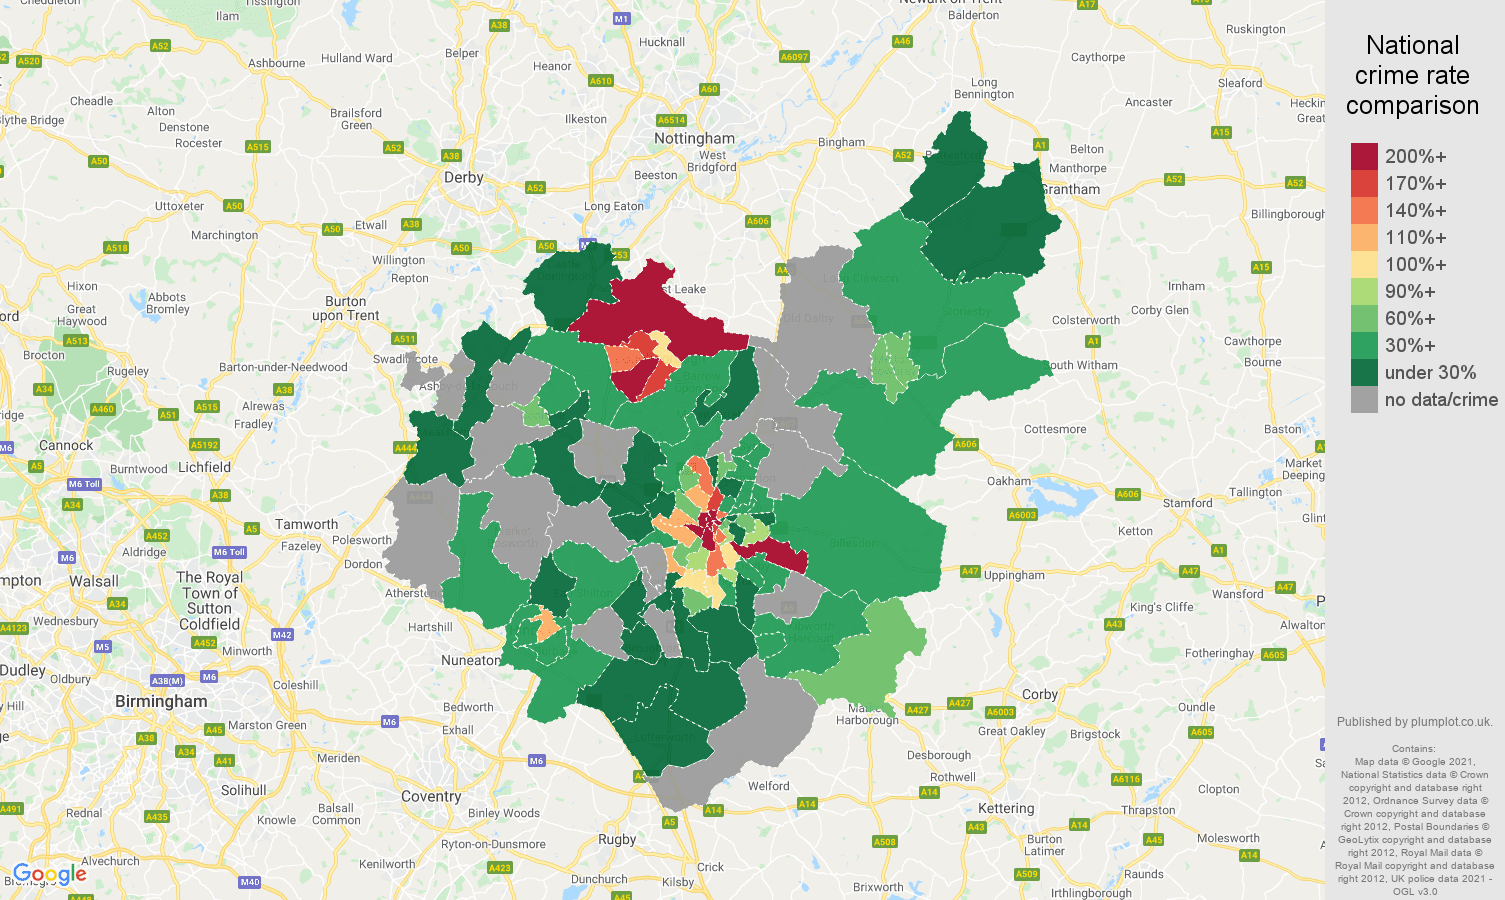 Leicestershire bicycle theft crime rate comparison map